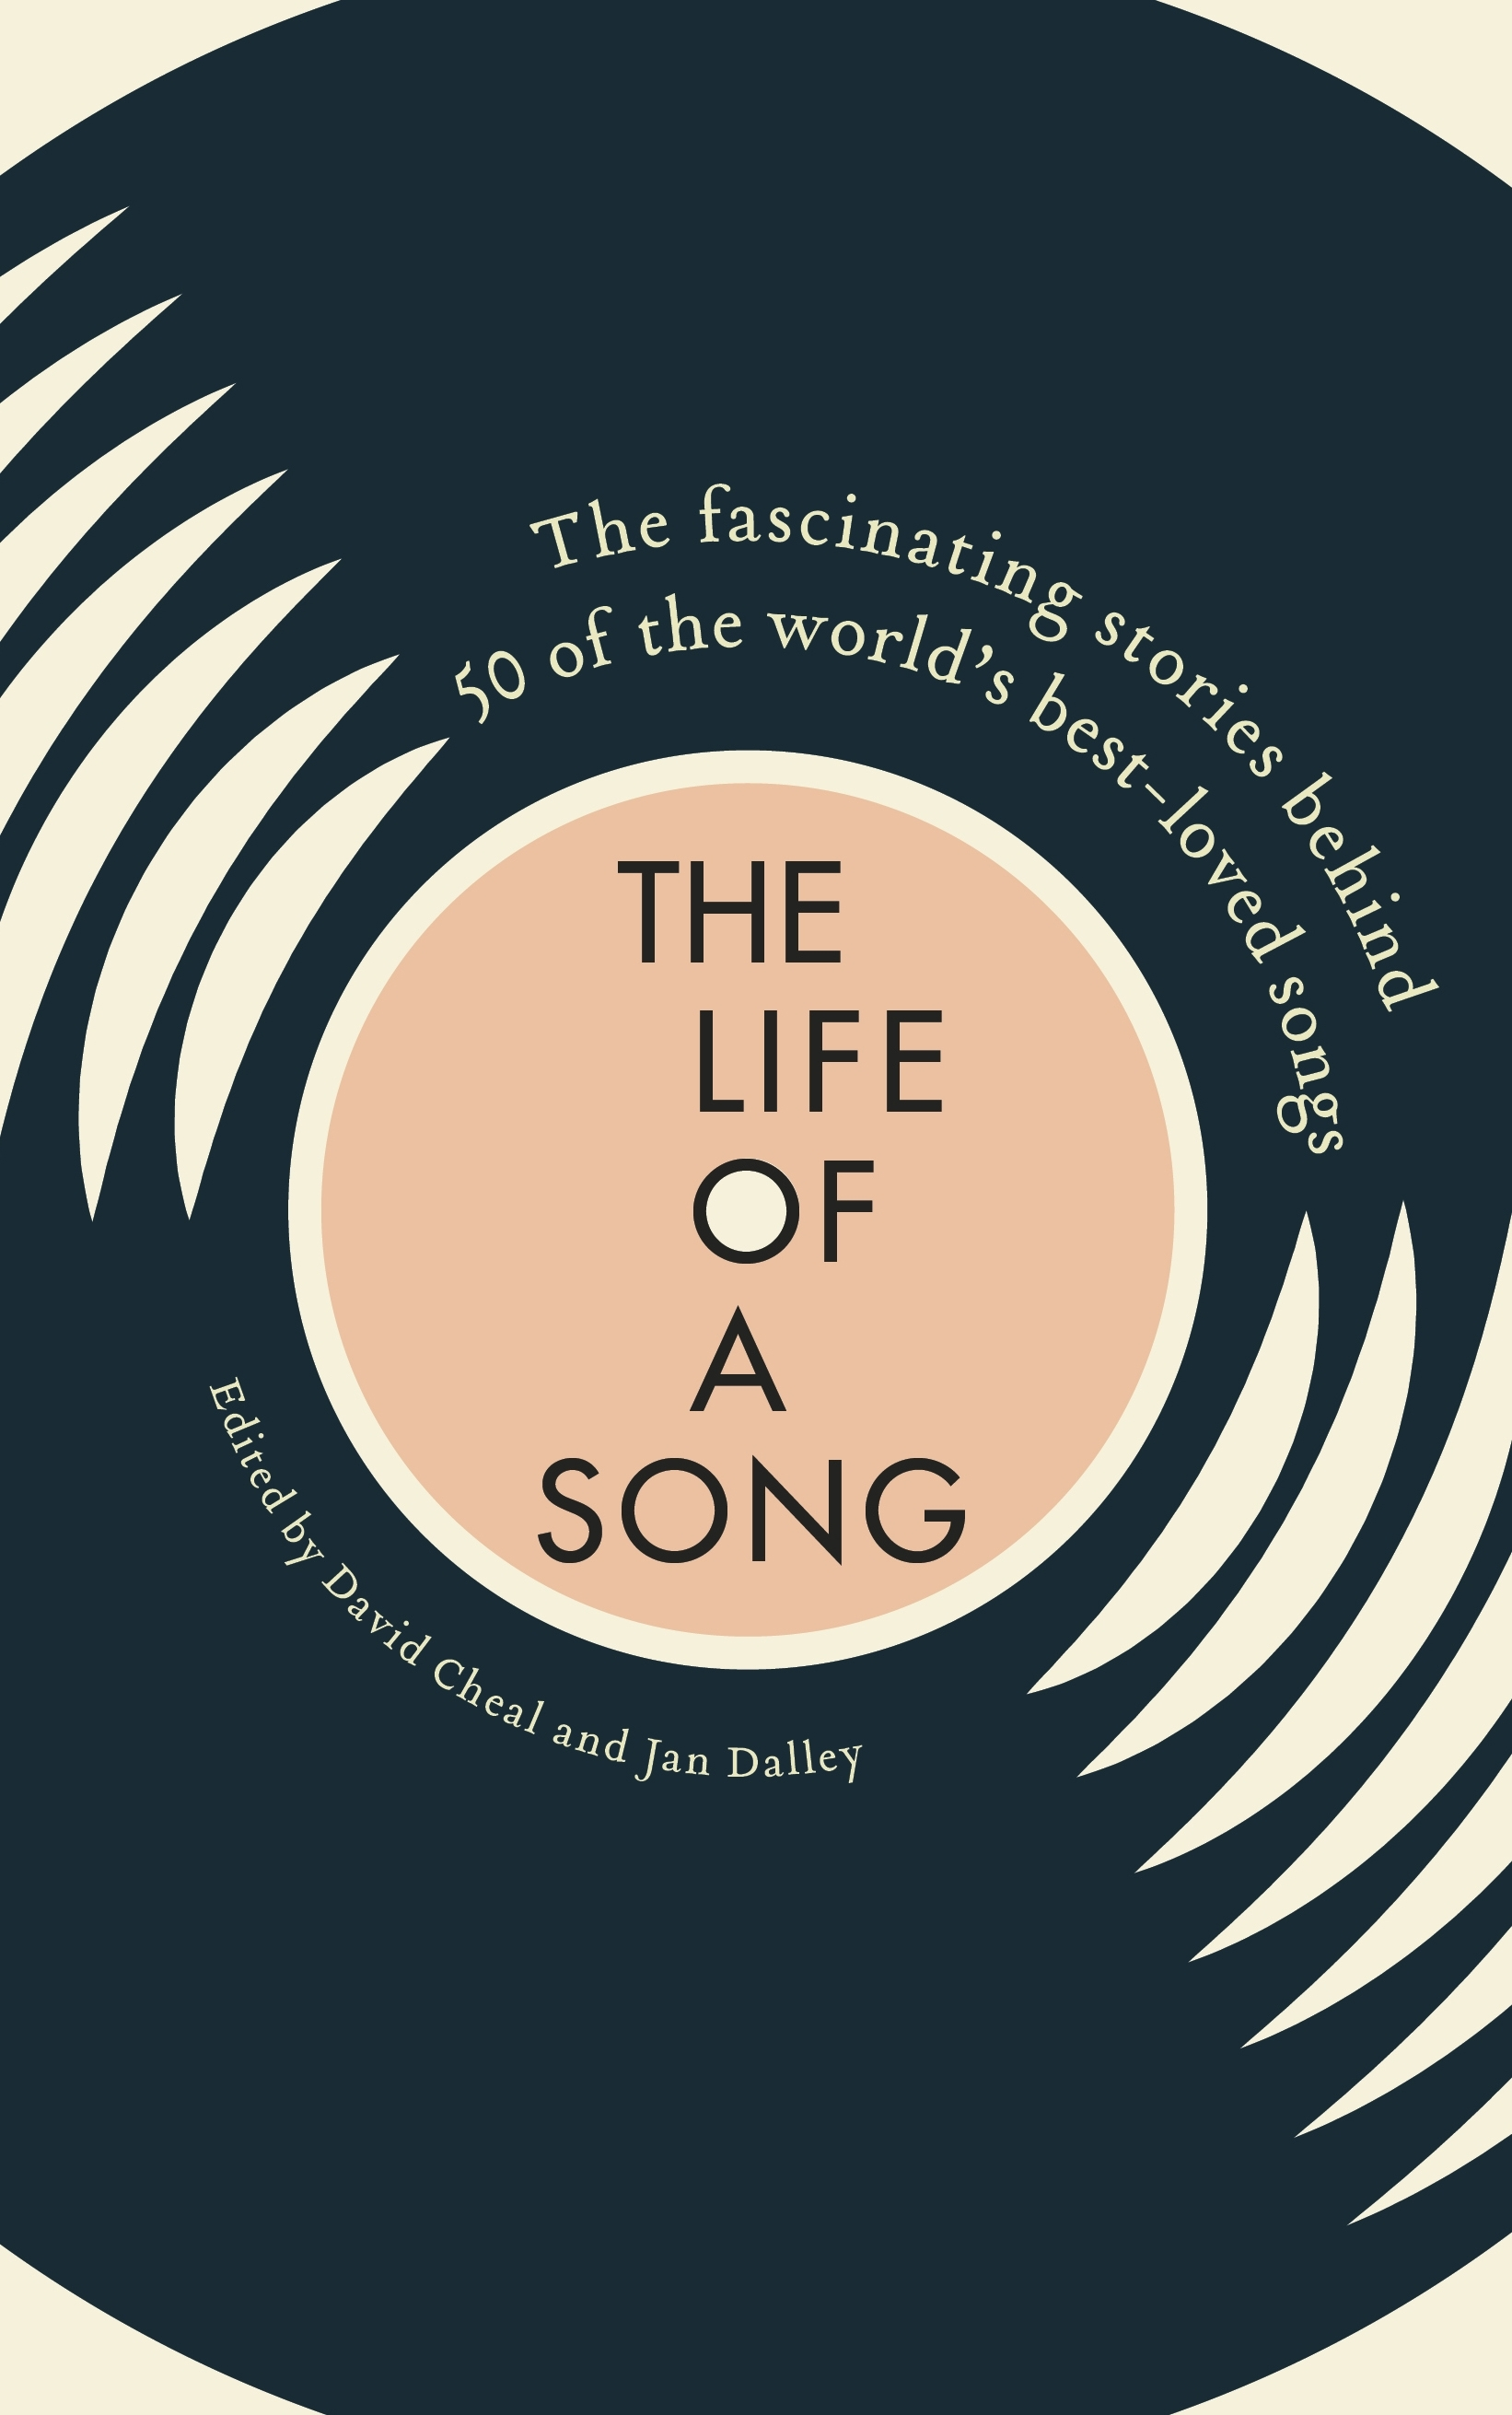 Life of a Song The fascinating stories behind 50 of the world's best-loved songs